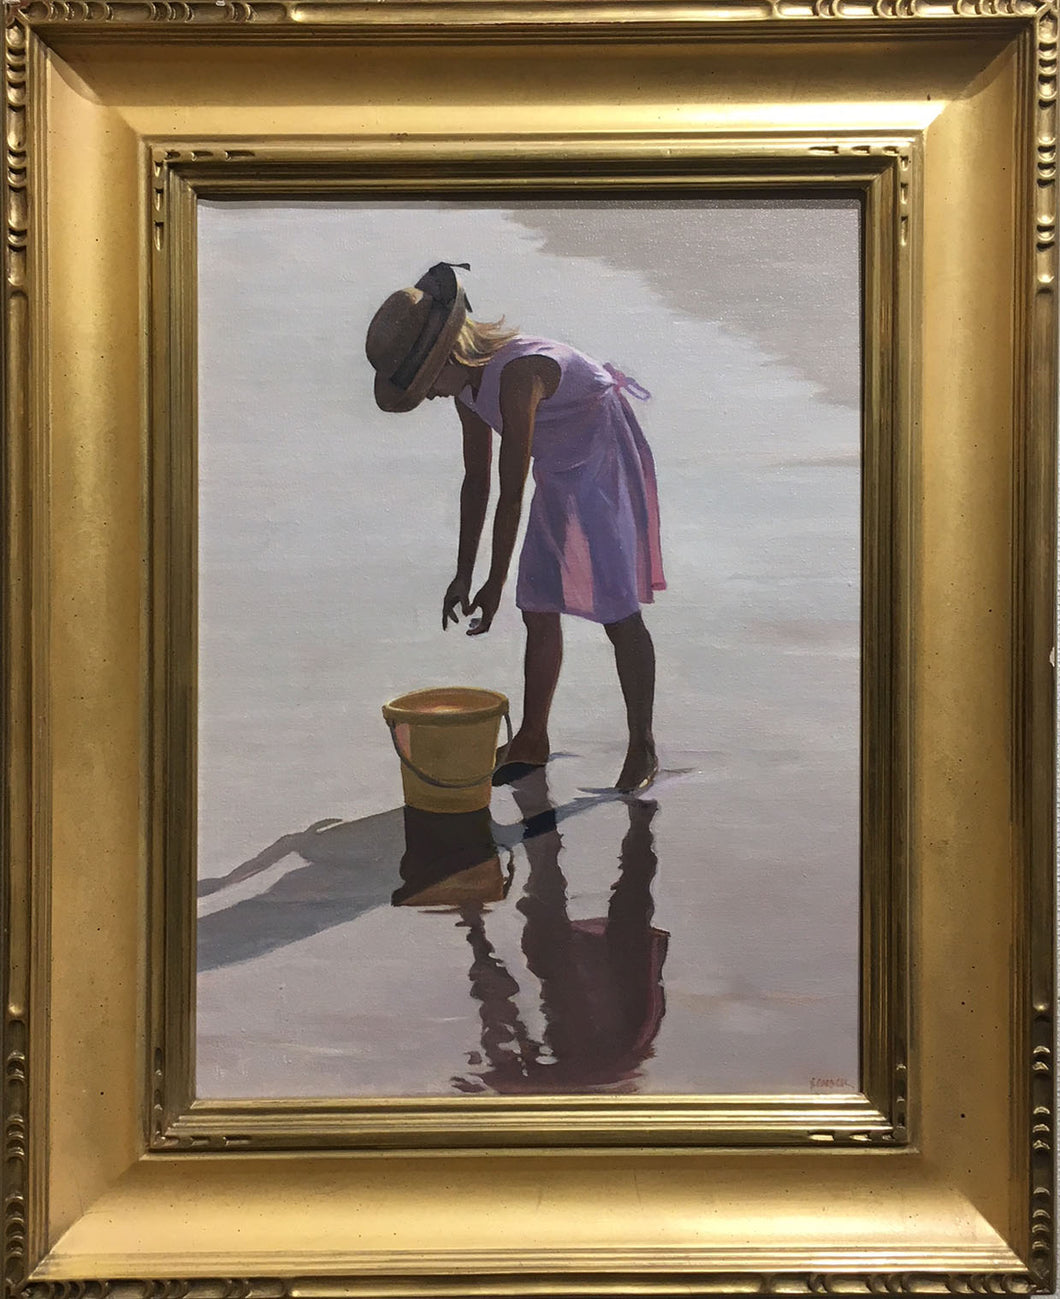 GIRL WITH PAIL By David Schock - Figurative Painting